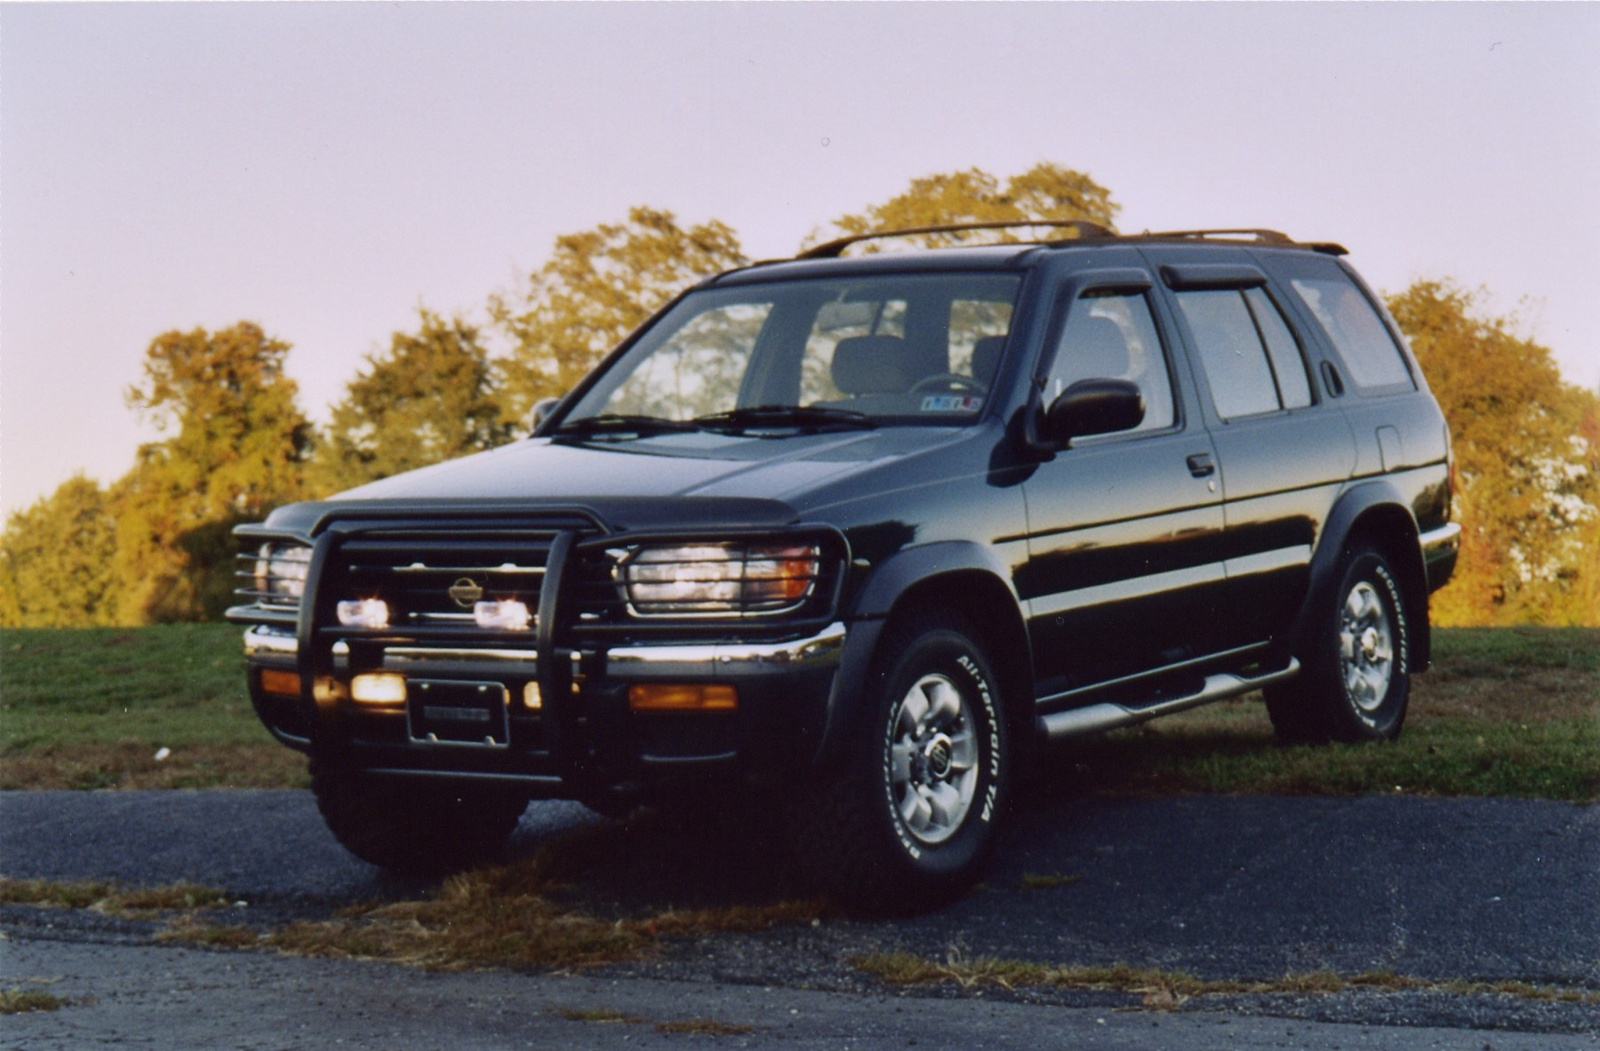 1997 nissan pathfinder pictures cargurus. Black Bedroom Furniture Sets. Home Design Ideas